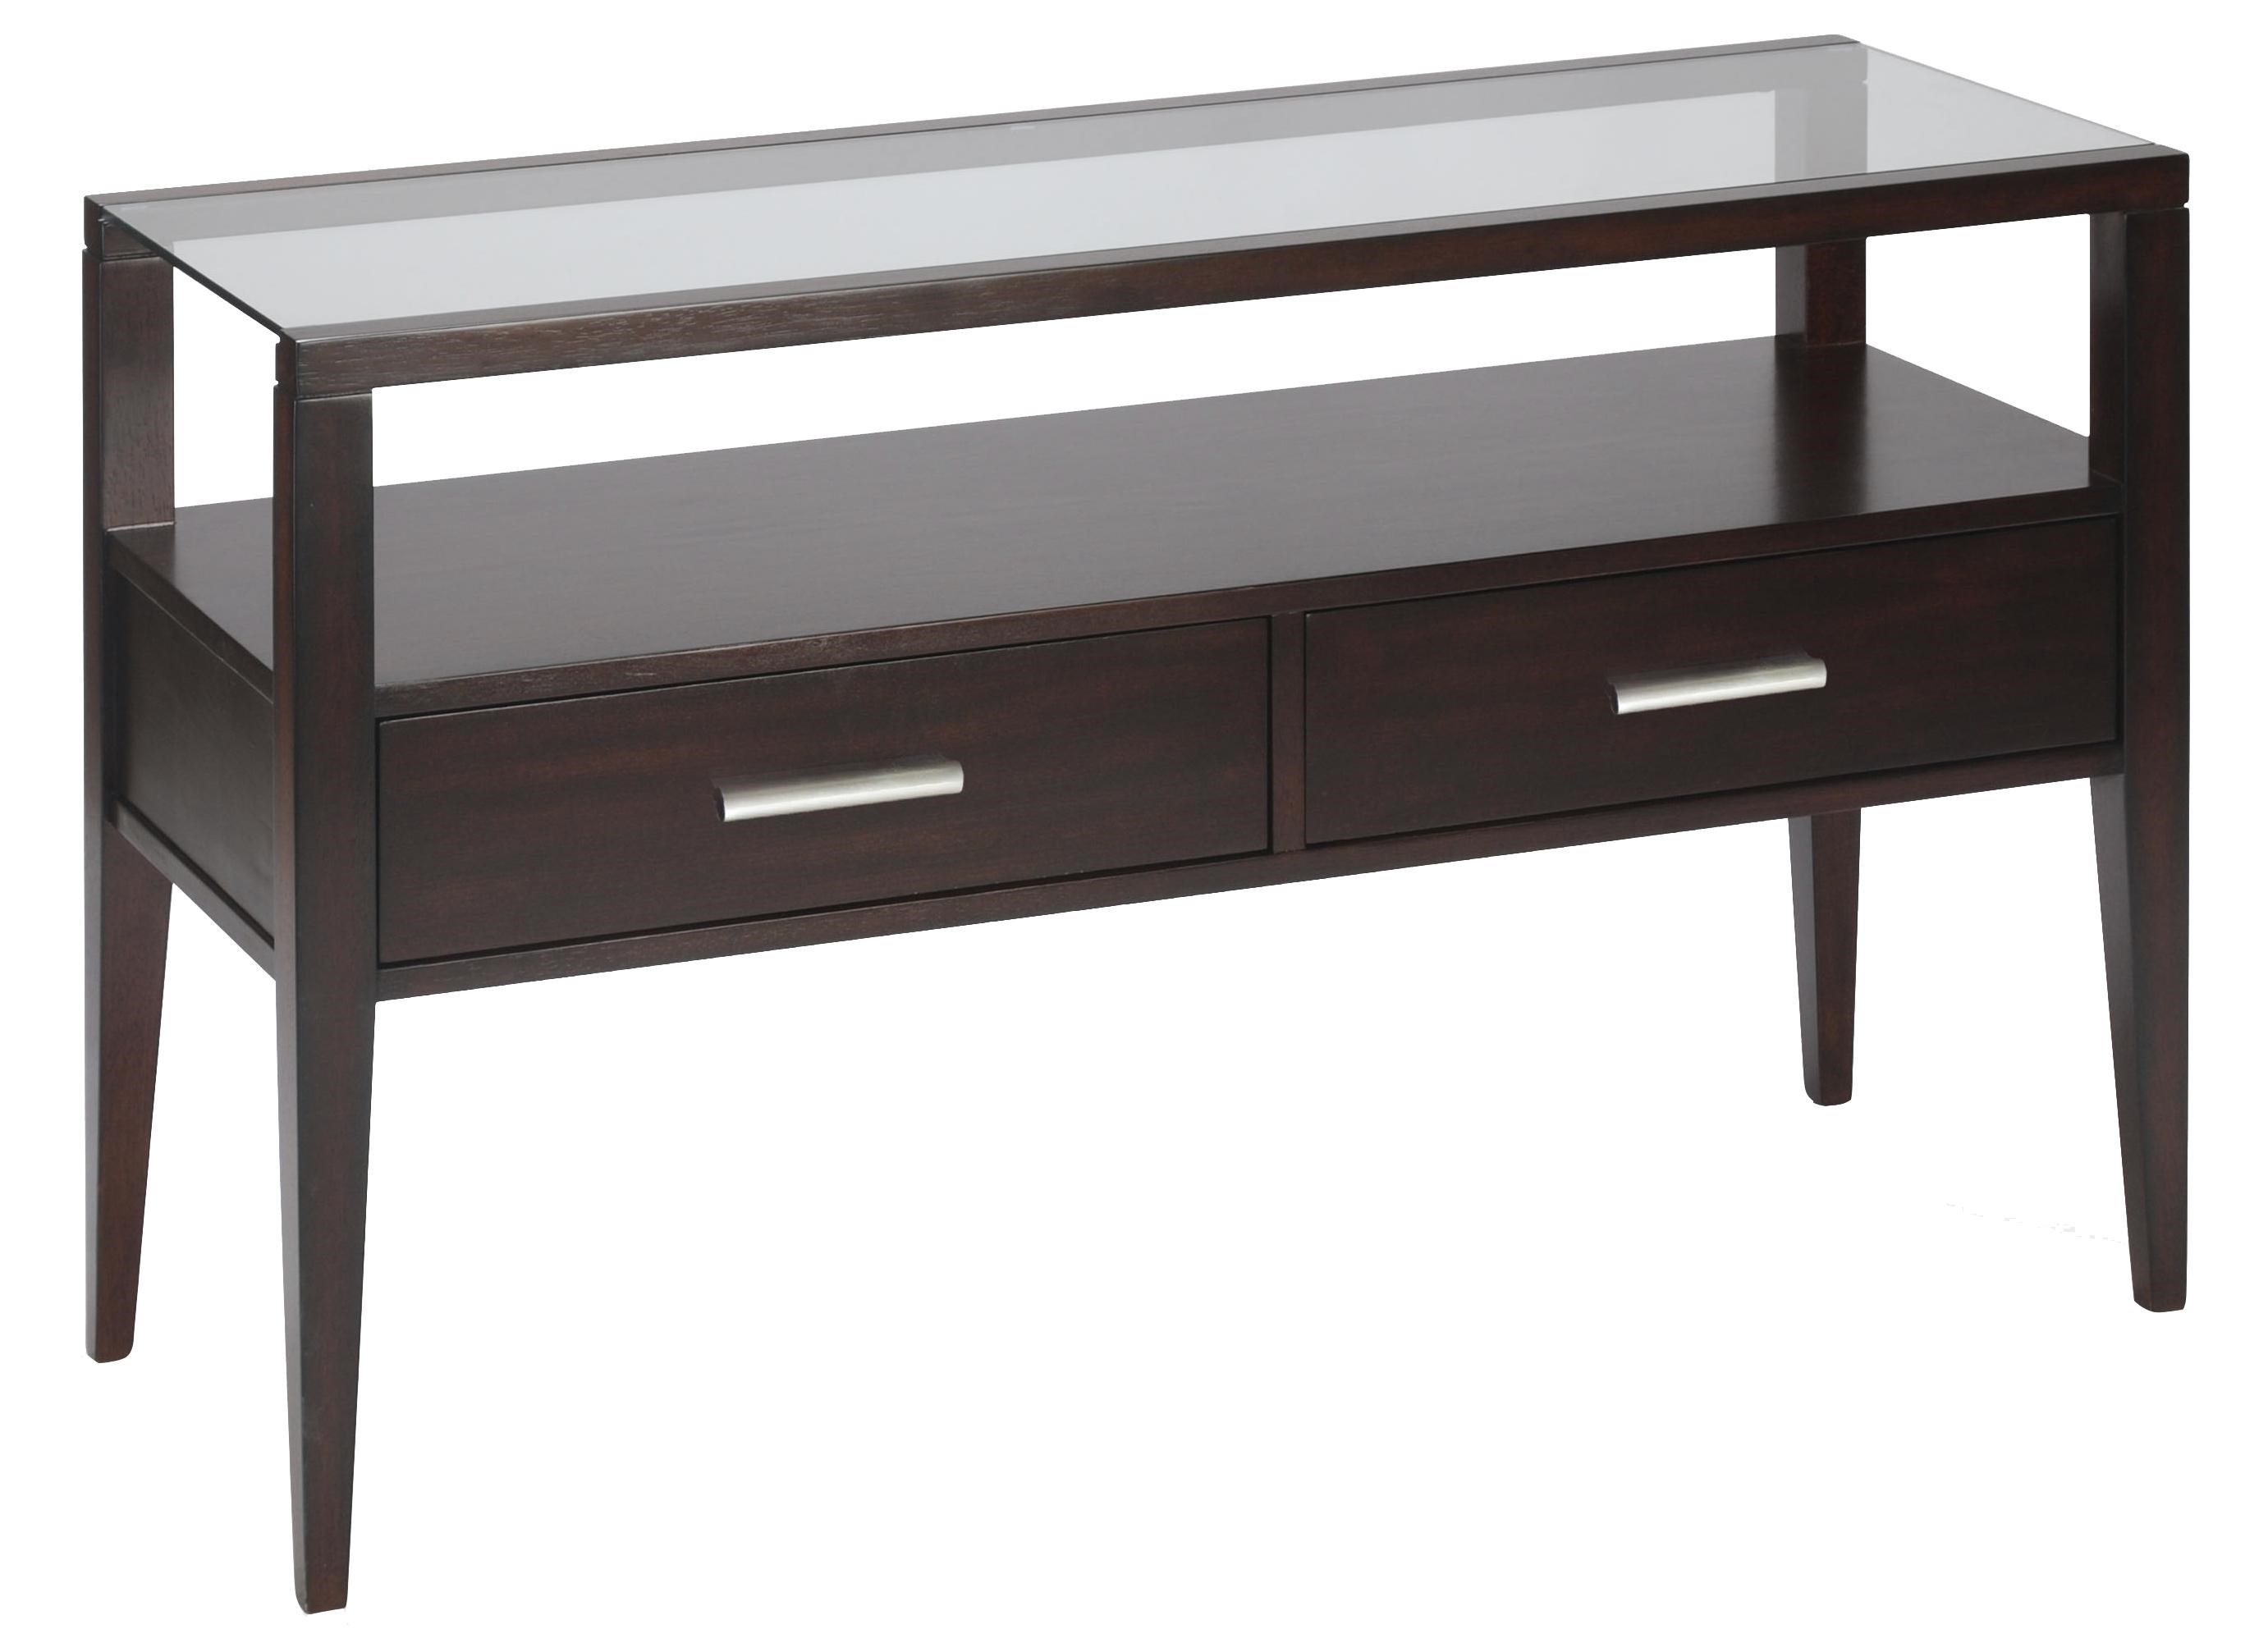 Baker Sofa Table By Magnussen Home